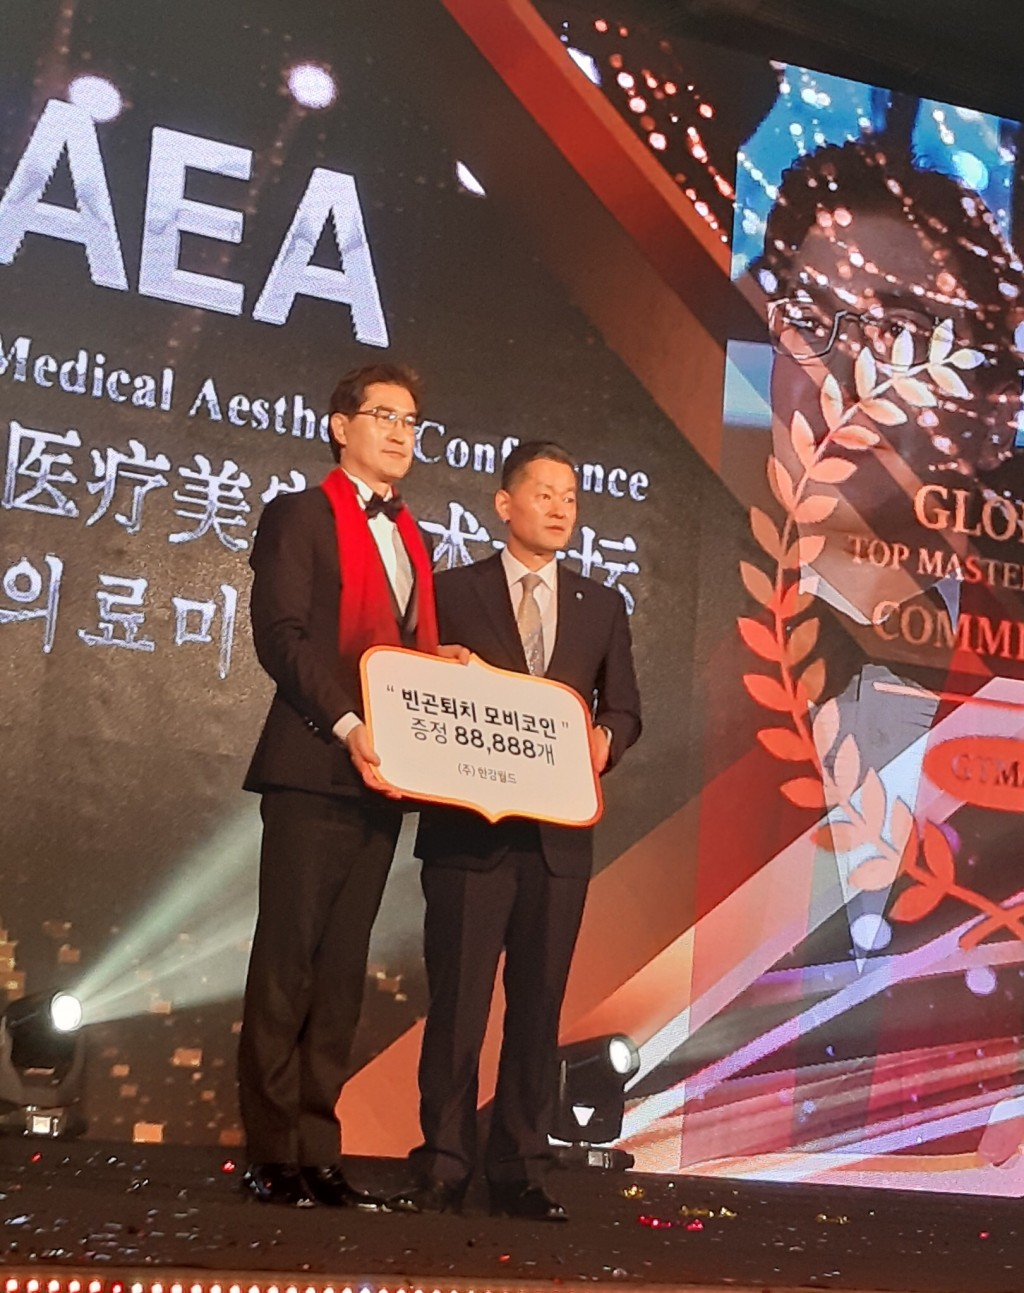 Chairman of Hangang World Inc Lim Sun Teak receiving special award at the 2019 International Medical Aesthetics Conference in Seoul